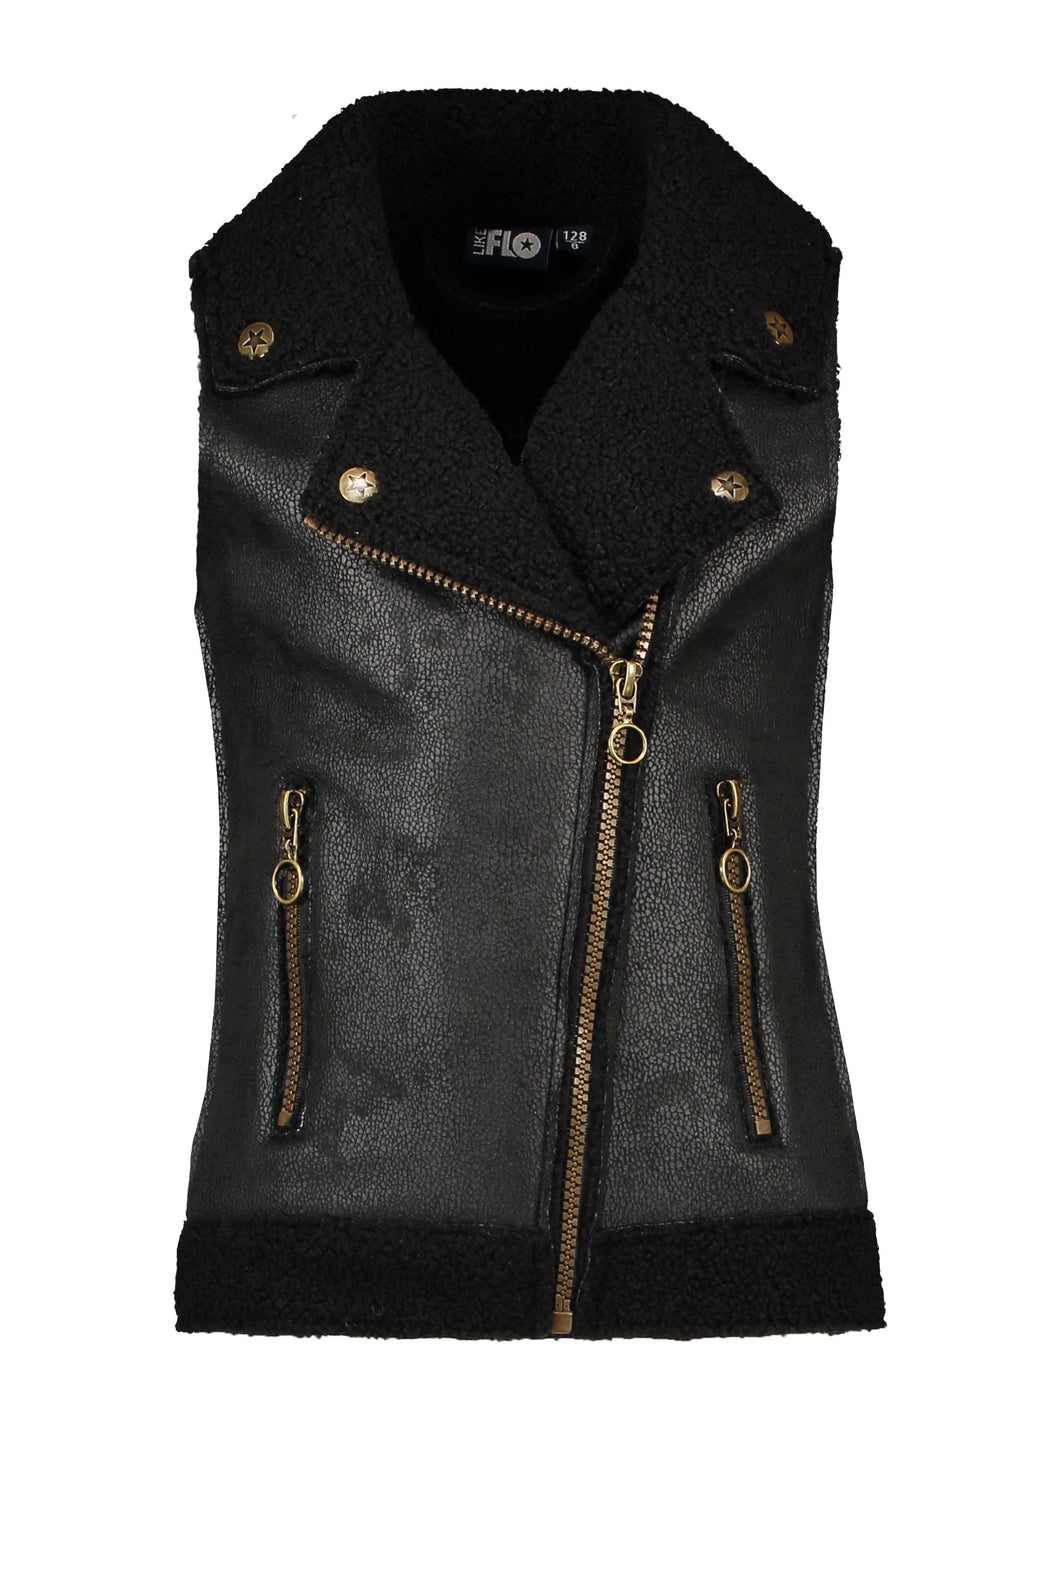 Like Flo - Lammy biker Bodywarmer - Teens Girls